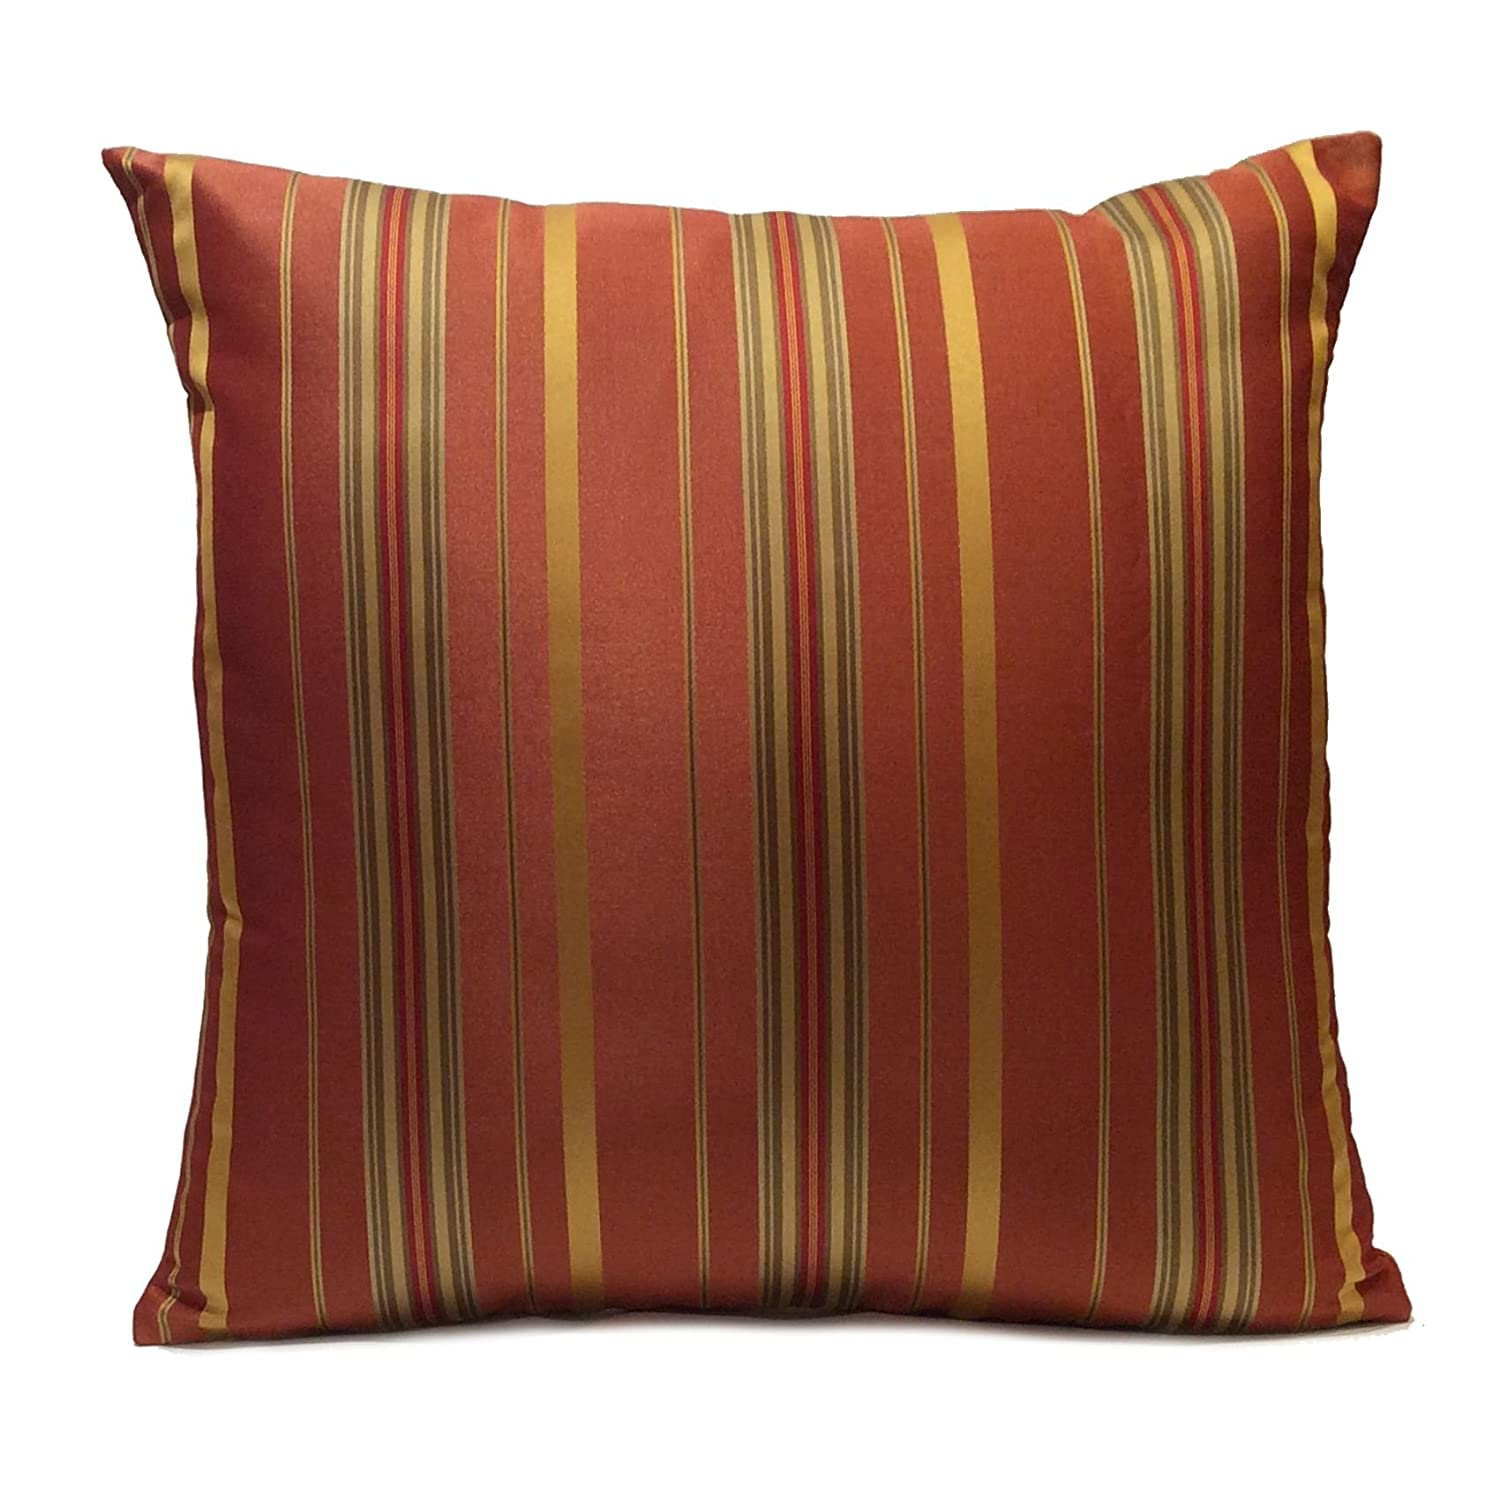 Copper Satin blend Decorative Throw Pillow Cover with Gold &